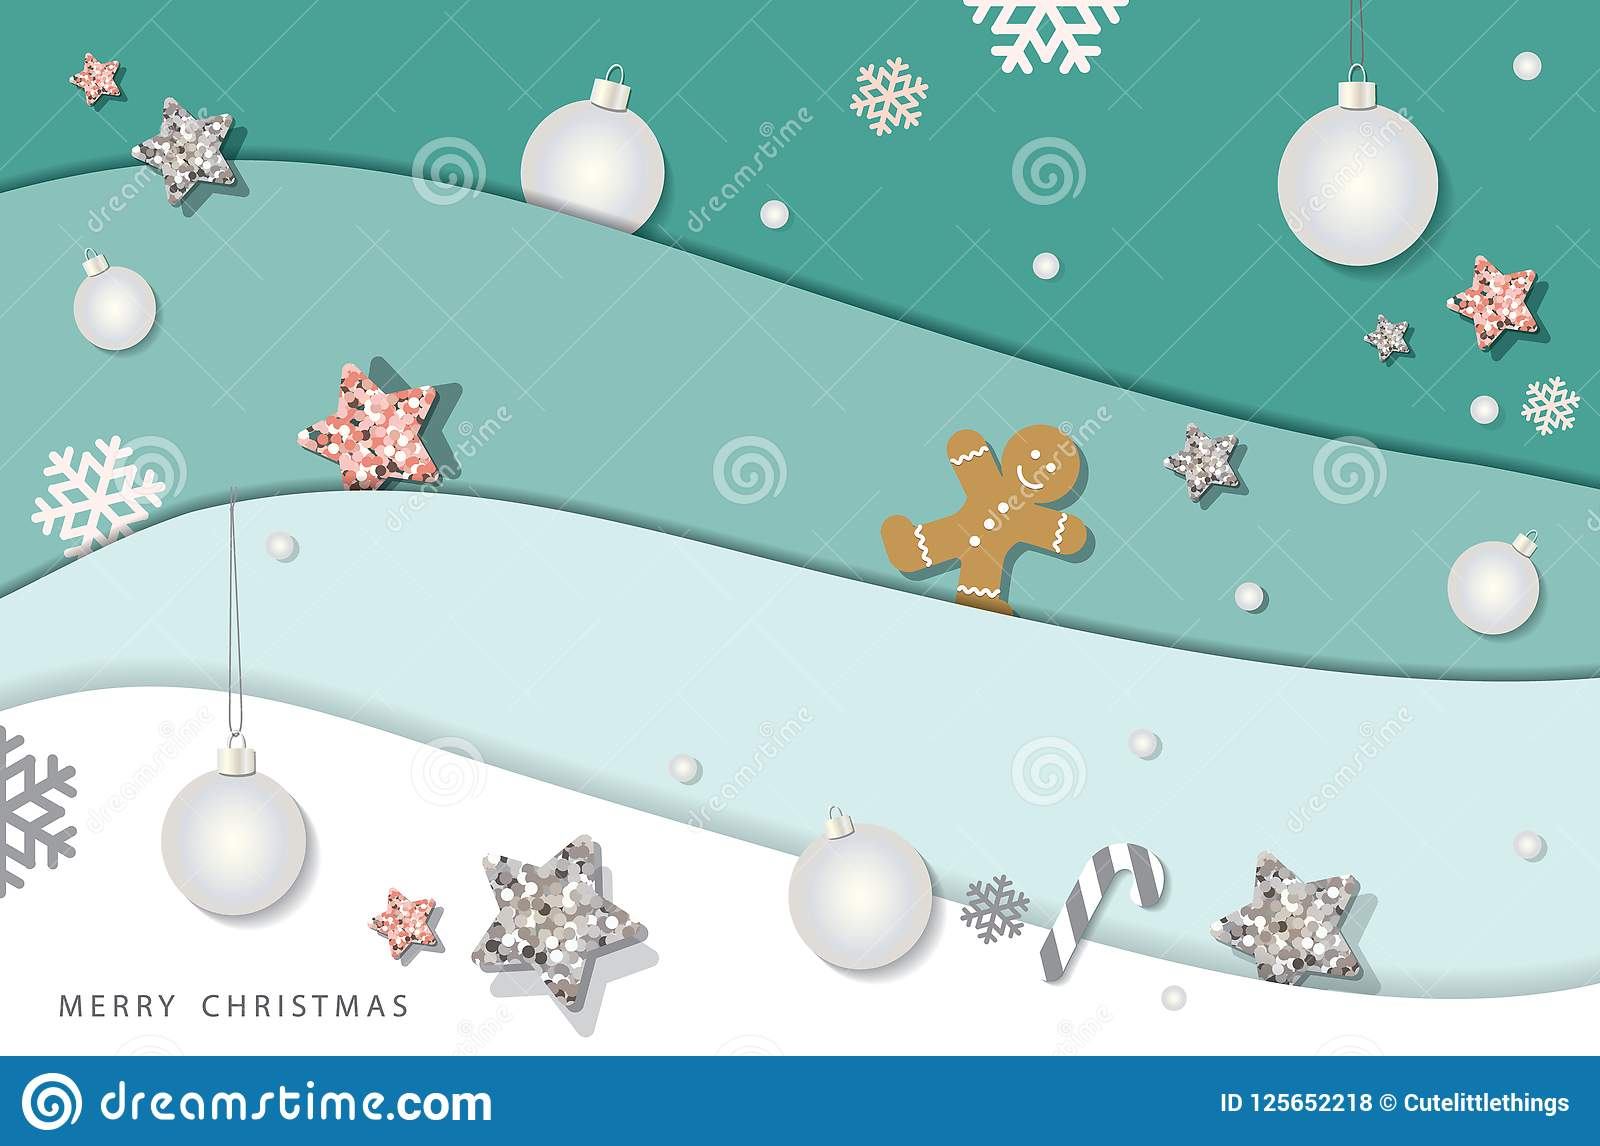 download christmas and happy new year winter background paper cutout layers decorated with glitter